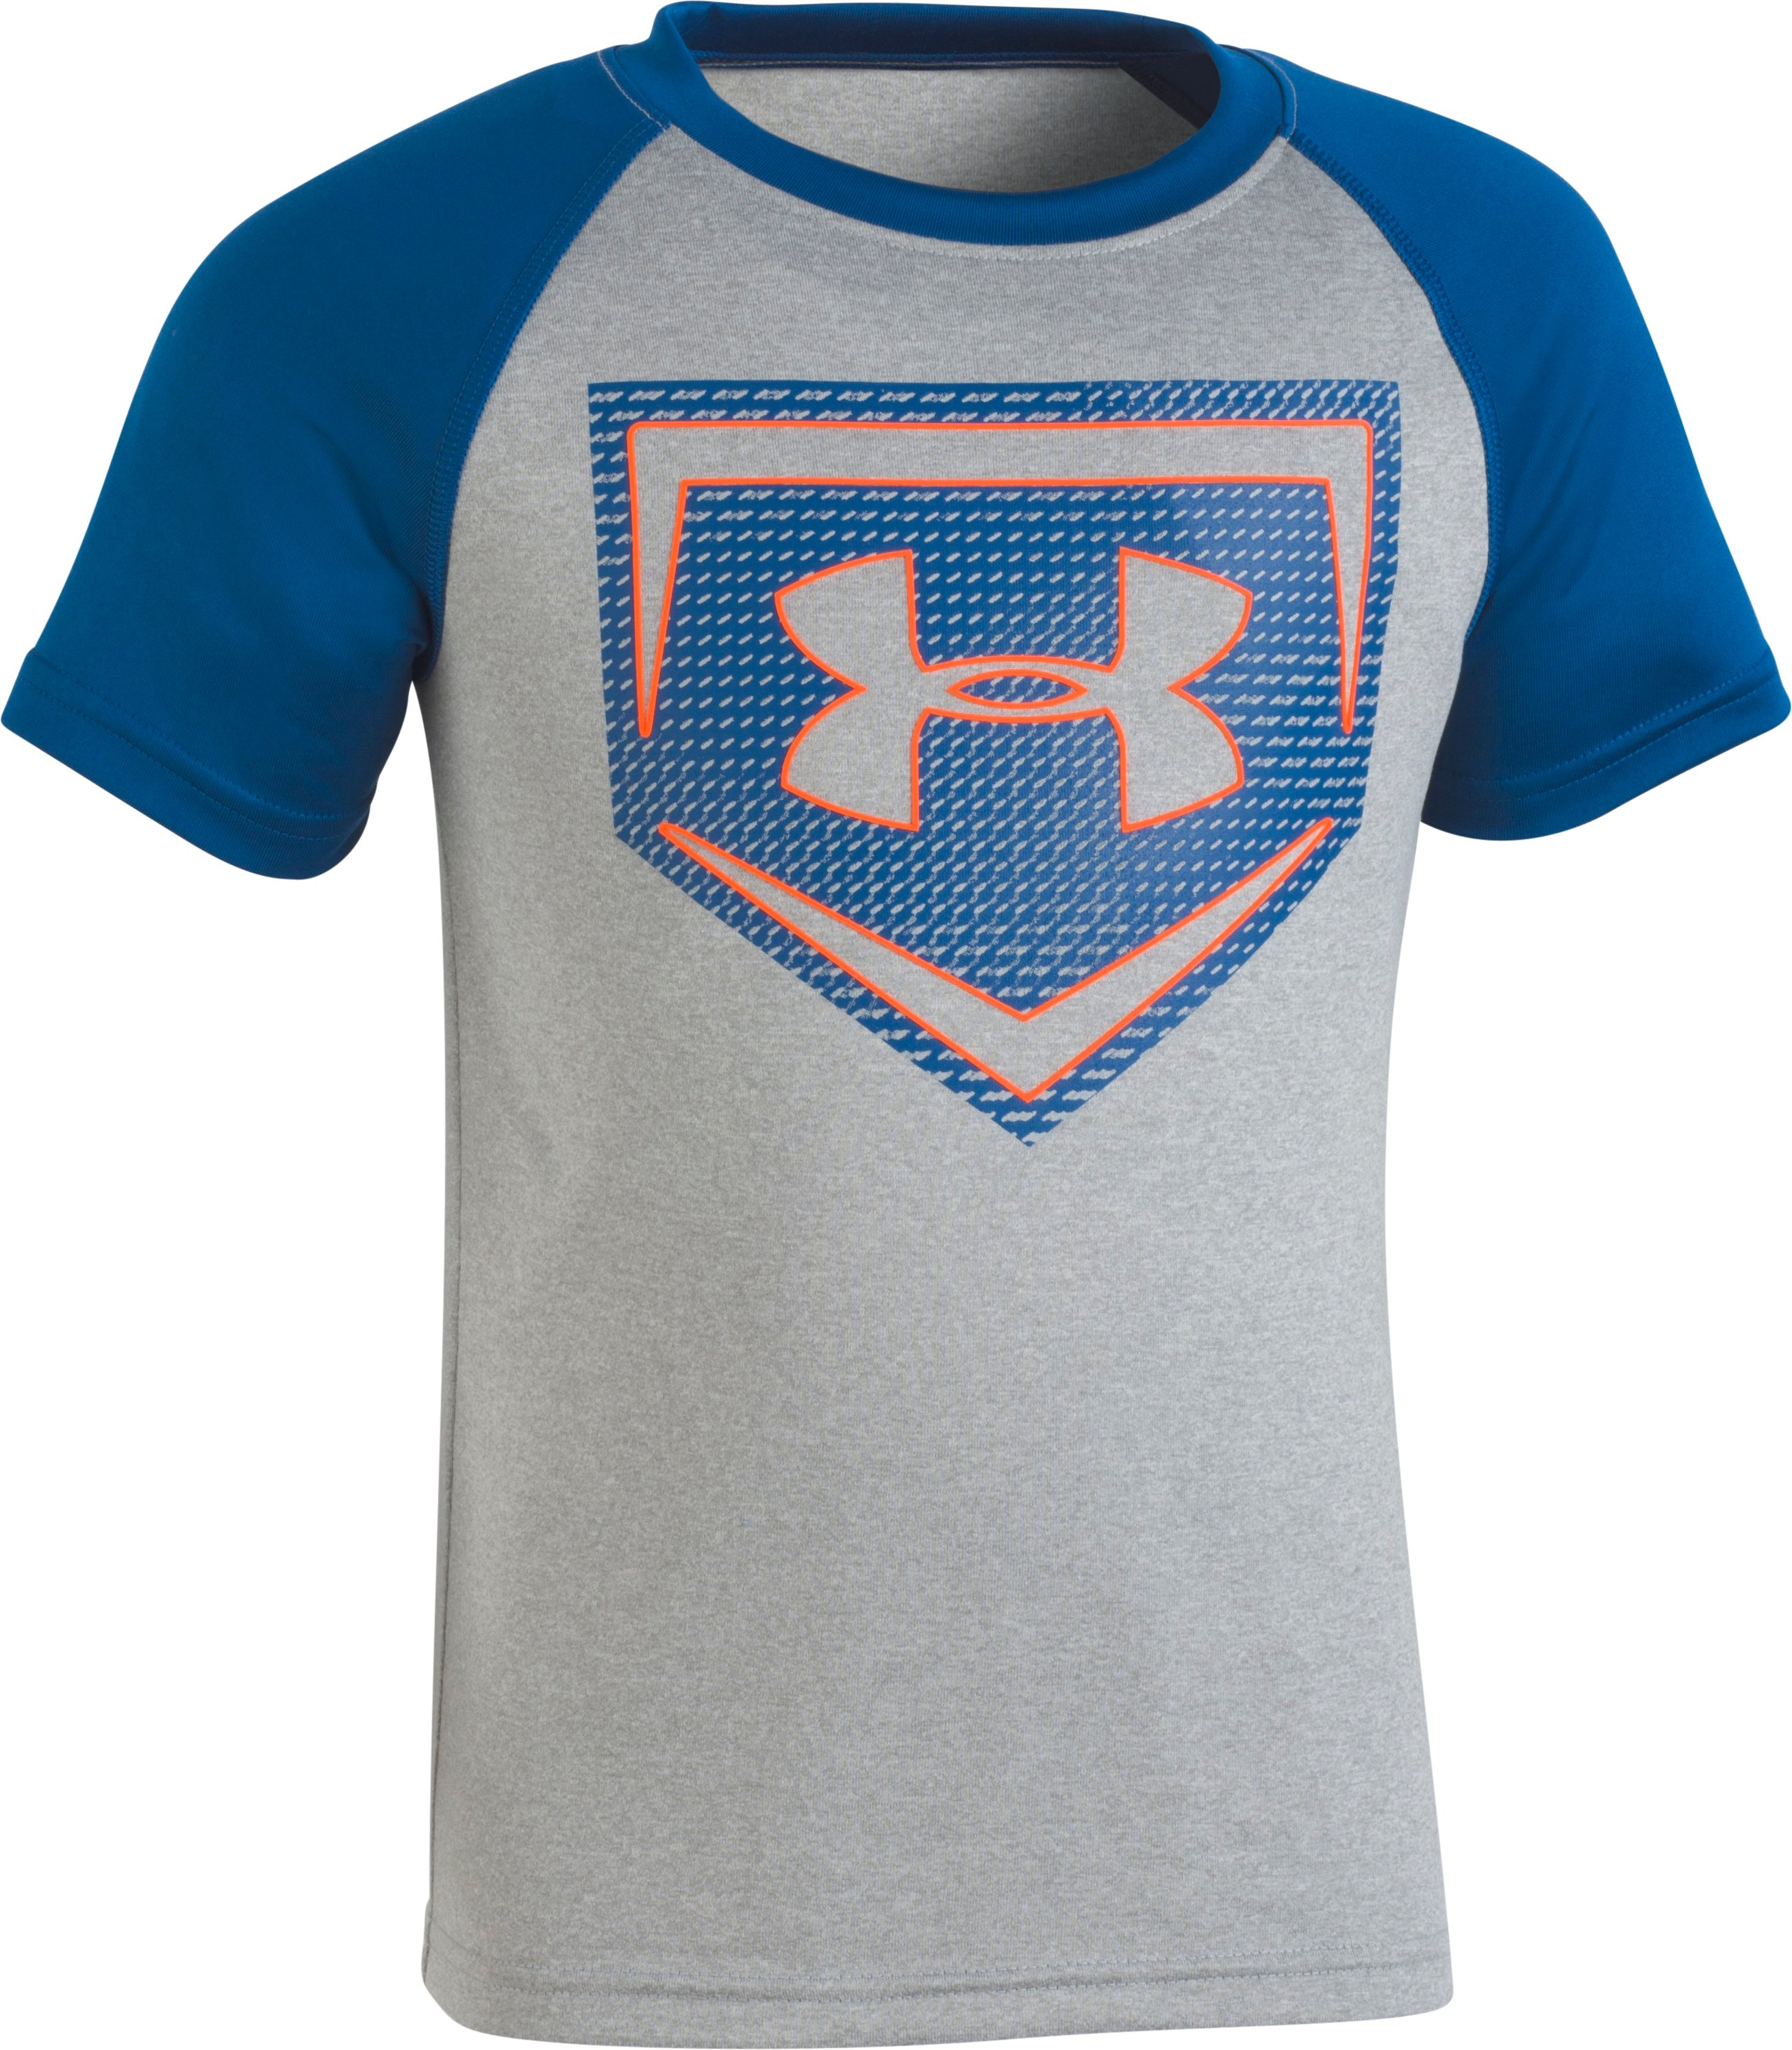 Boys' Toddler UA Sync Home Plate T-Shirt , STEEL MEDIUM HEATHER, zoomed